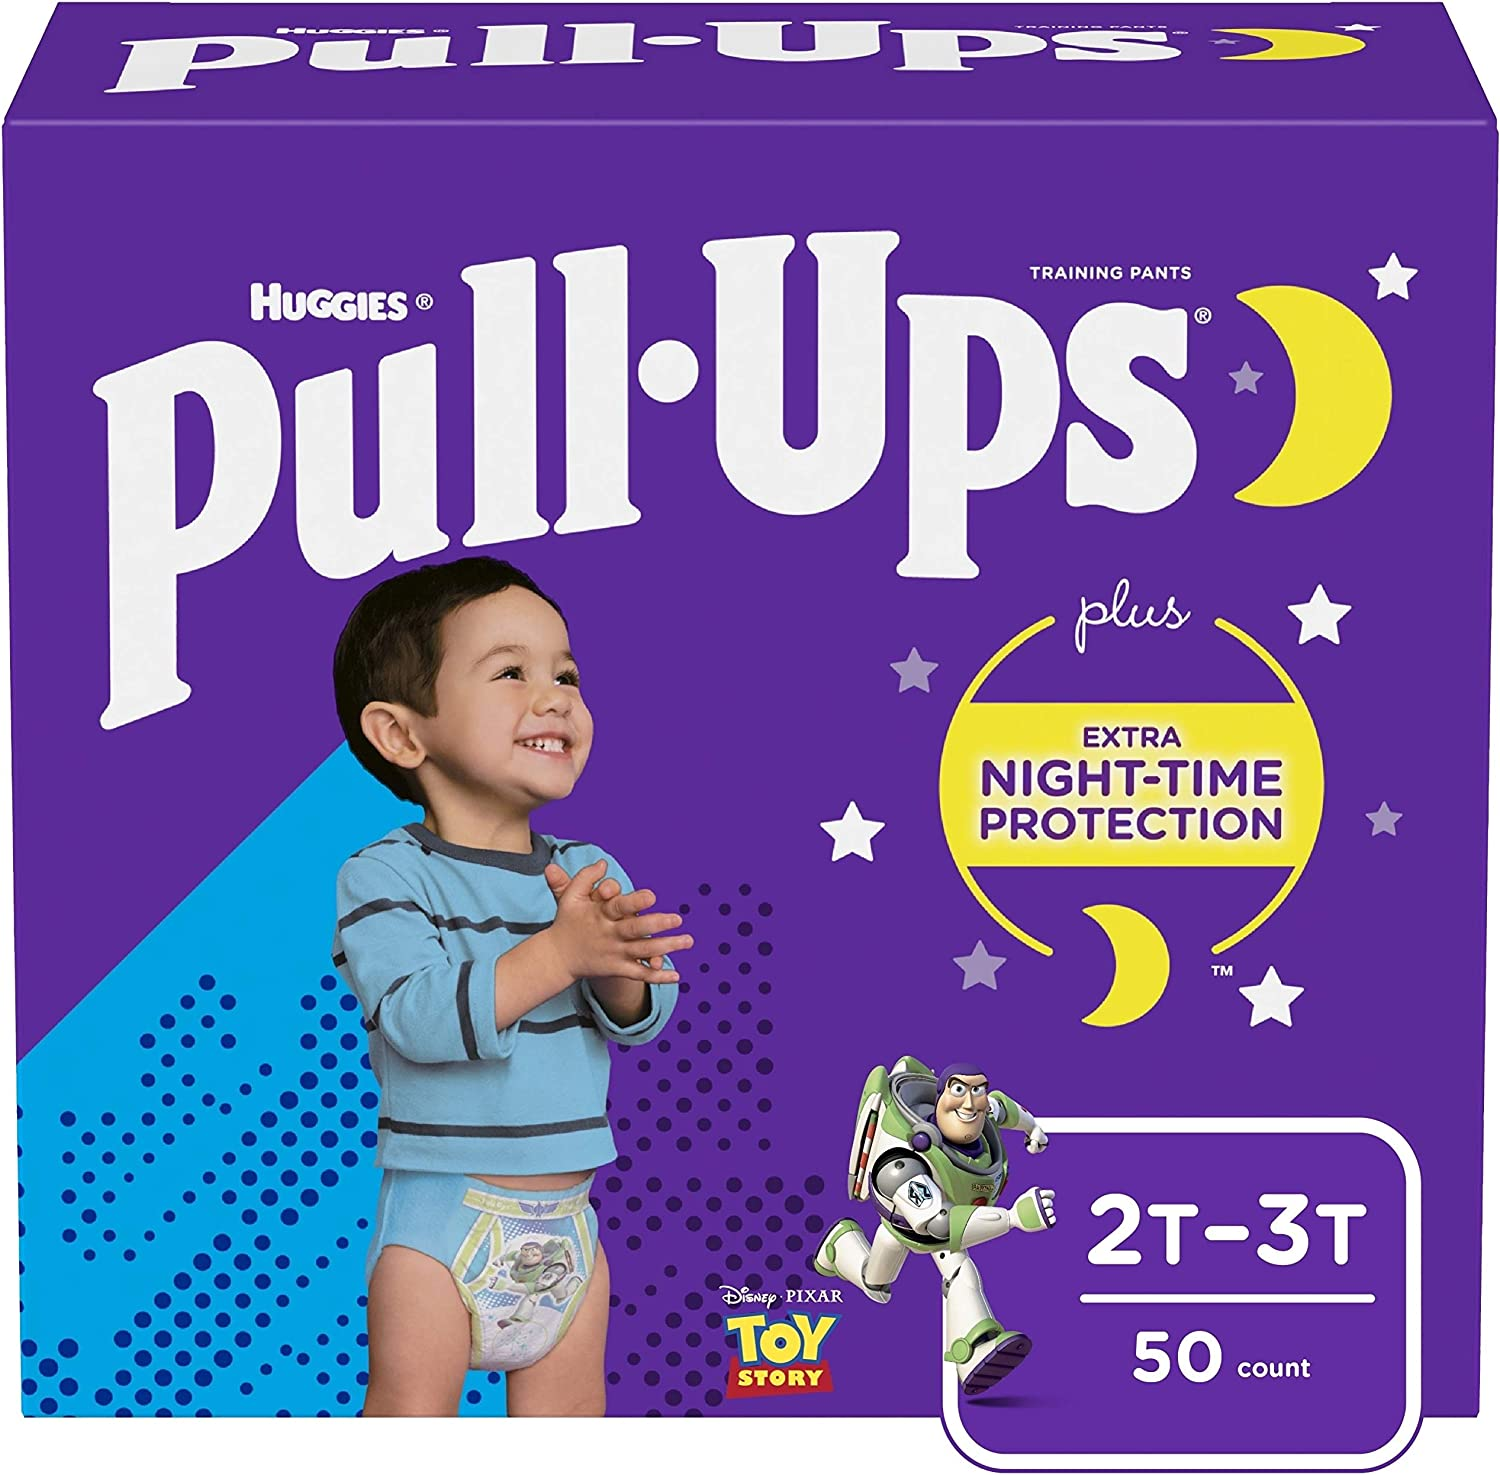 Pull-Ups Night-Time Potty Training Pants for Boys, 2T-3T (18-34 lb.), 50 Count (Packaging May Vary)